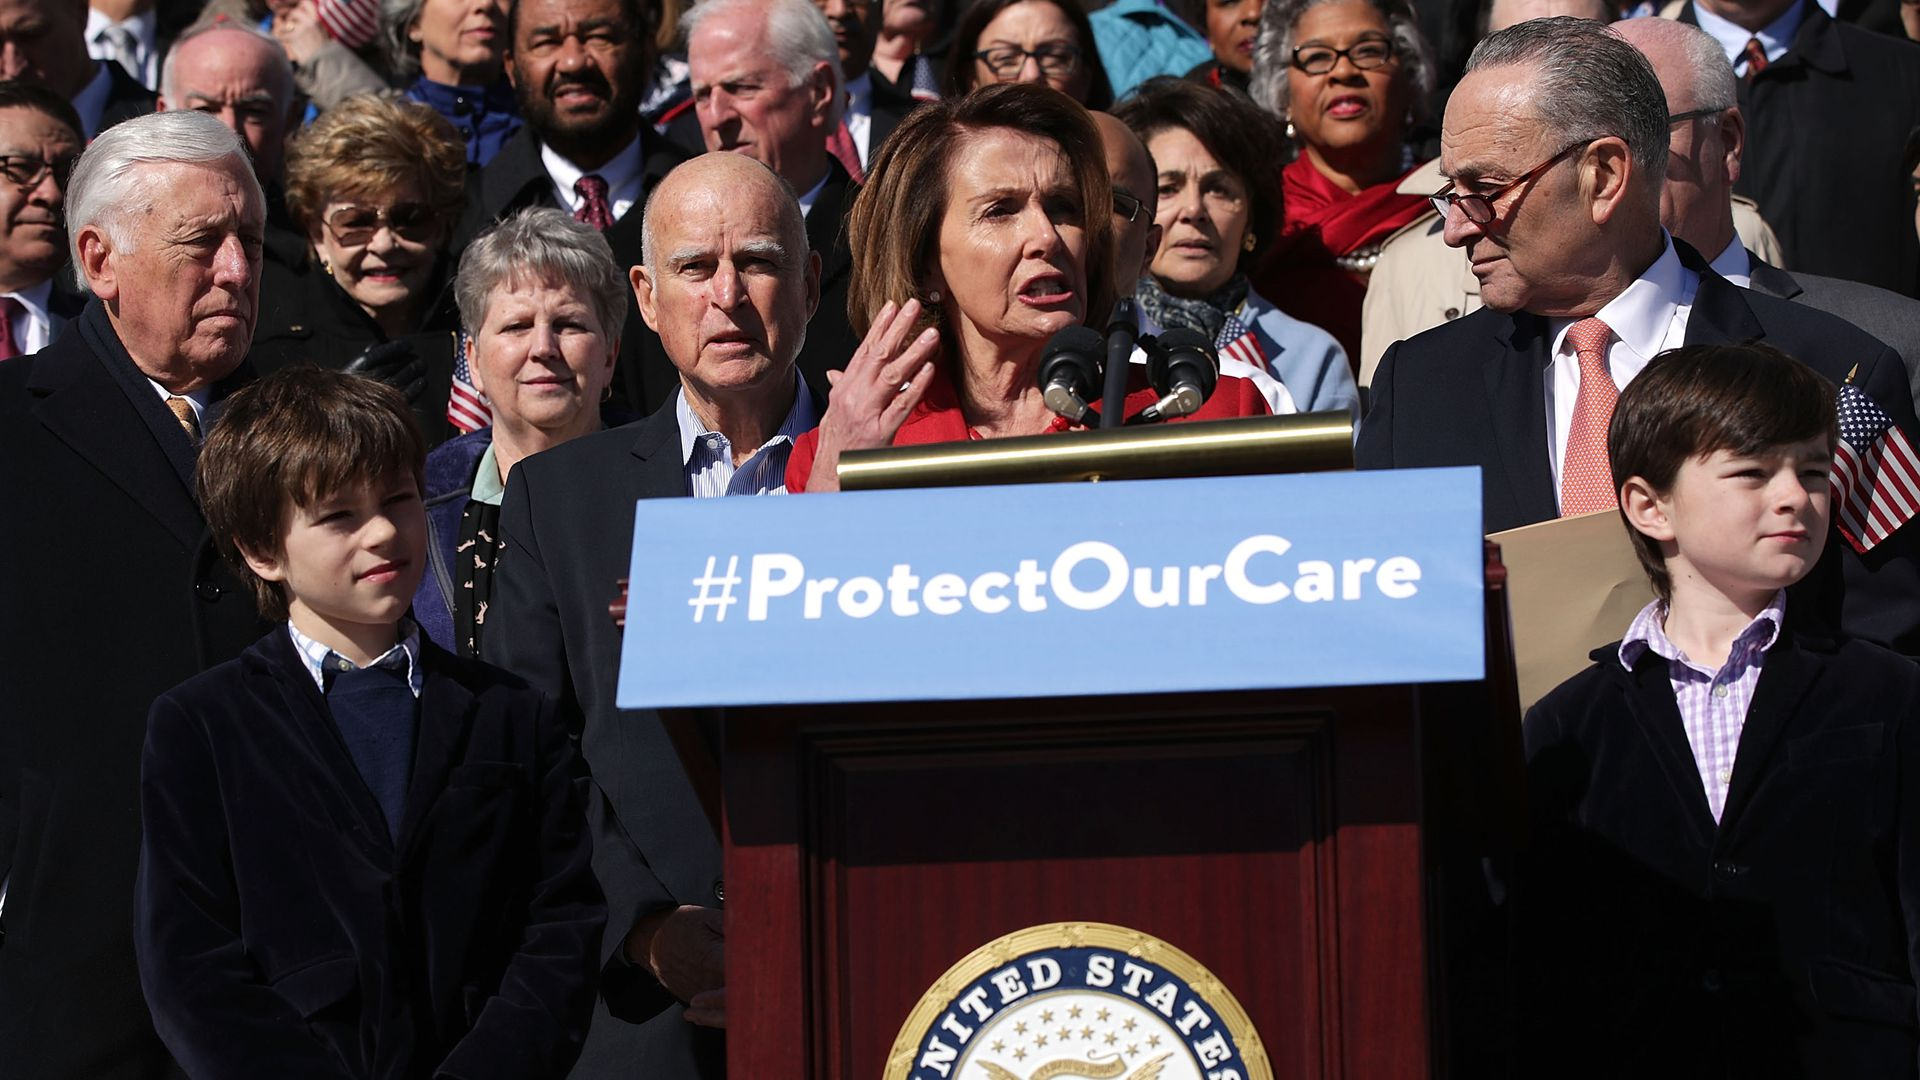 House Democrats demand ACA lawsuit answers from White House and DOJ